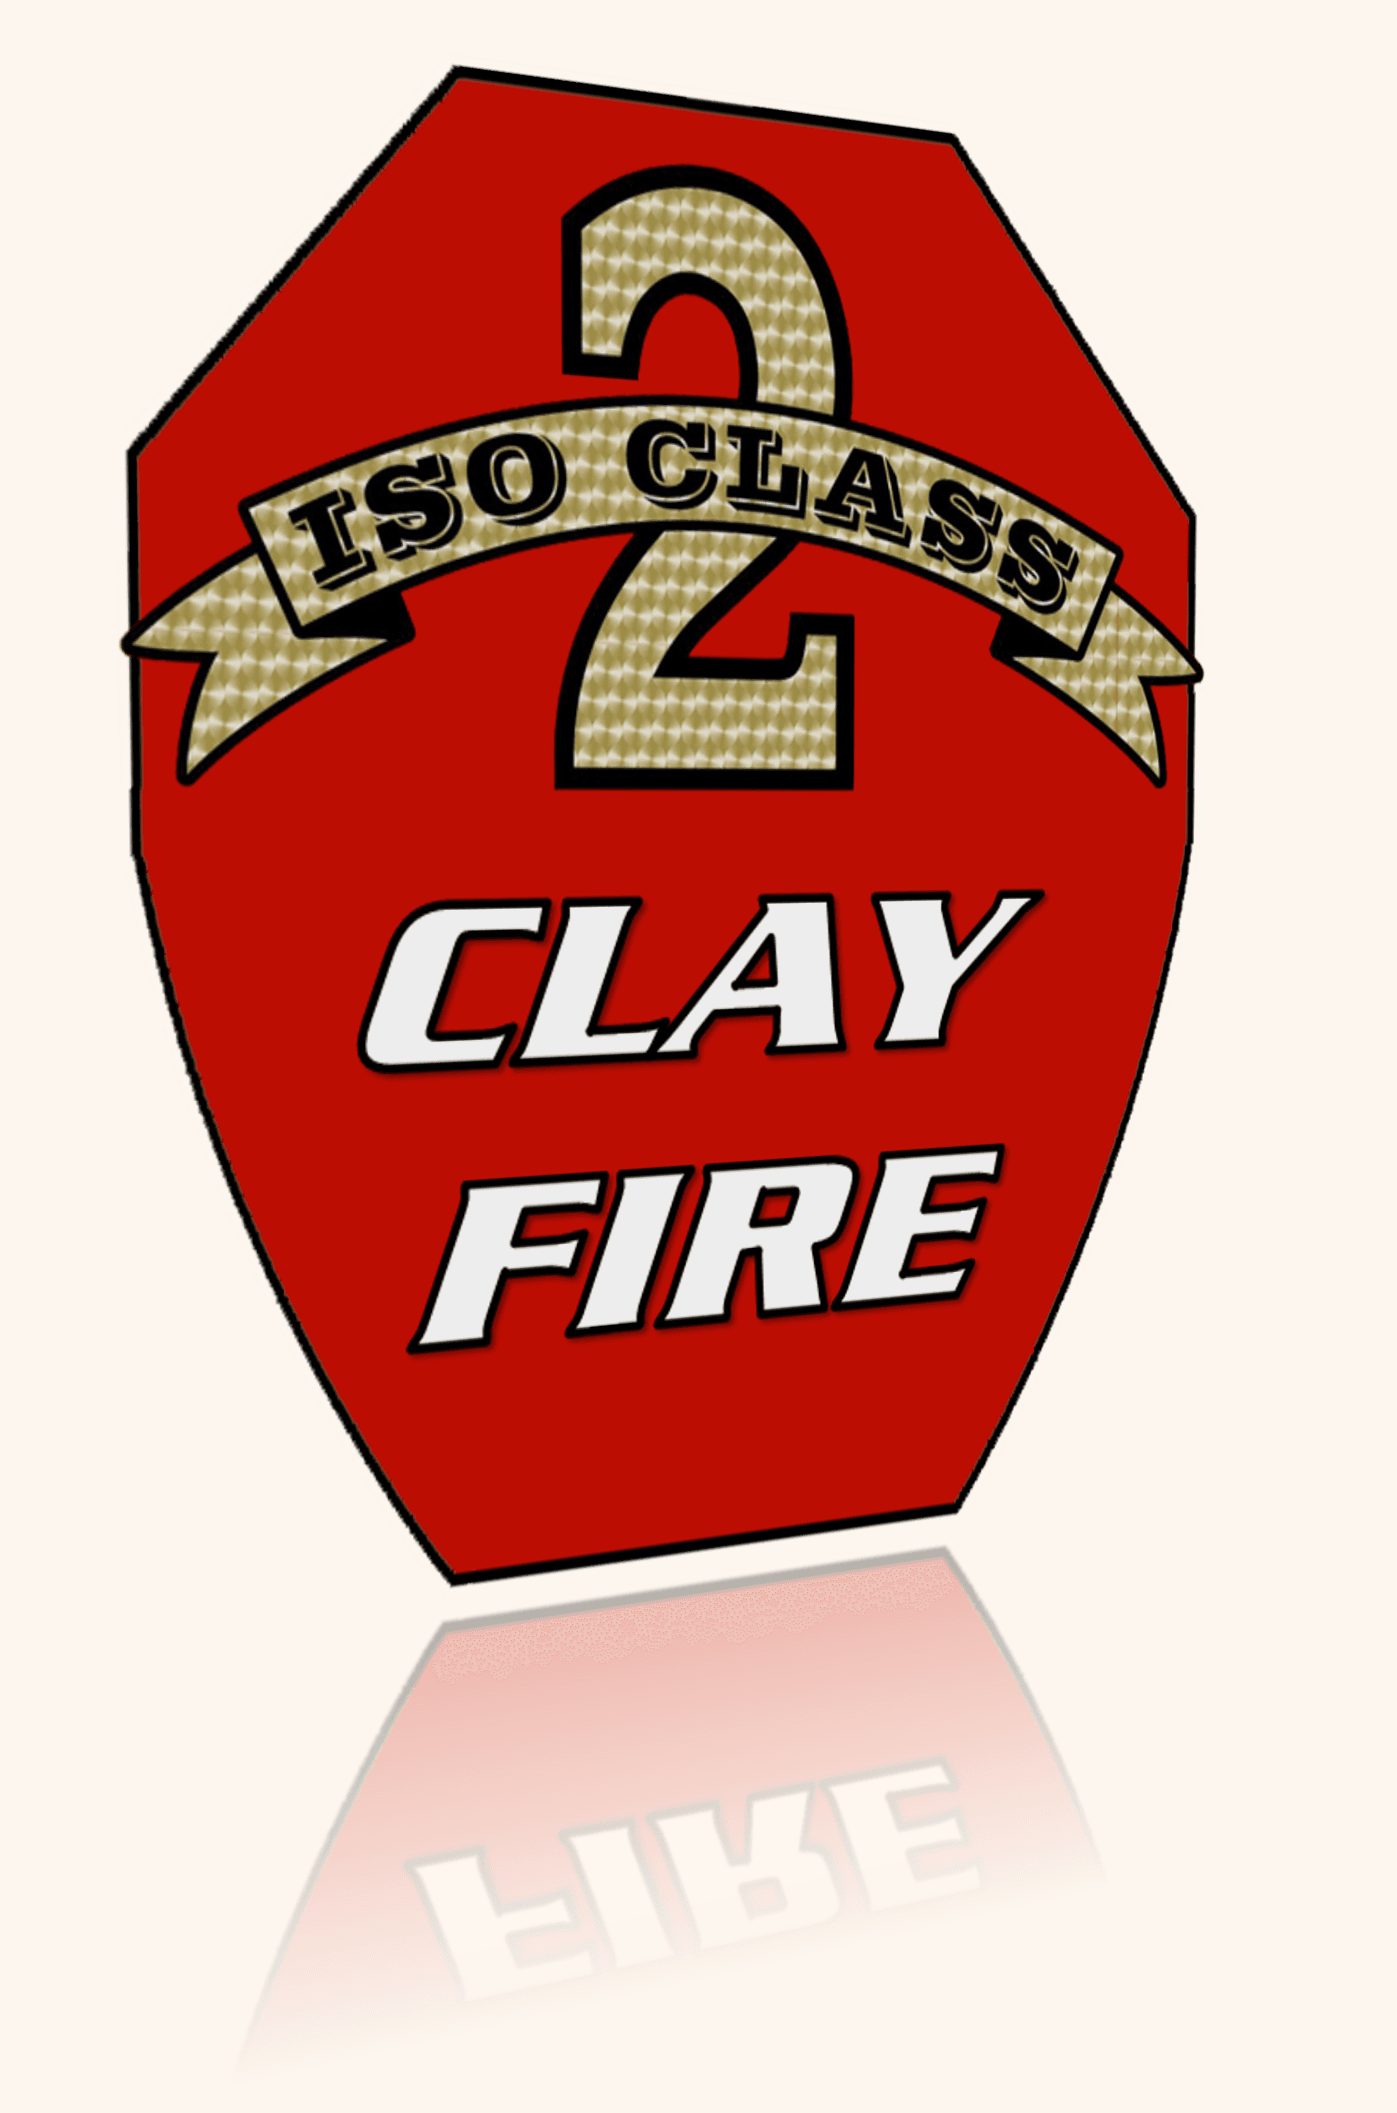 Clay Fire ISO Class 2